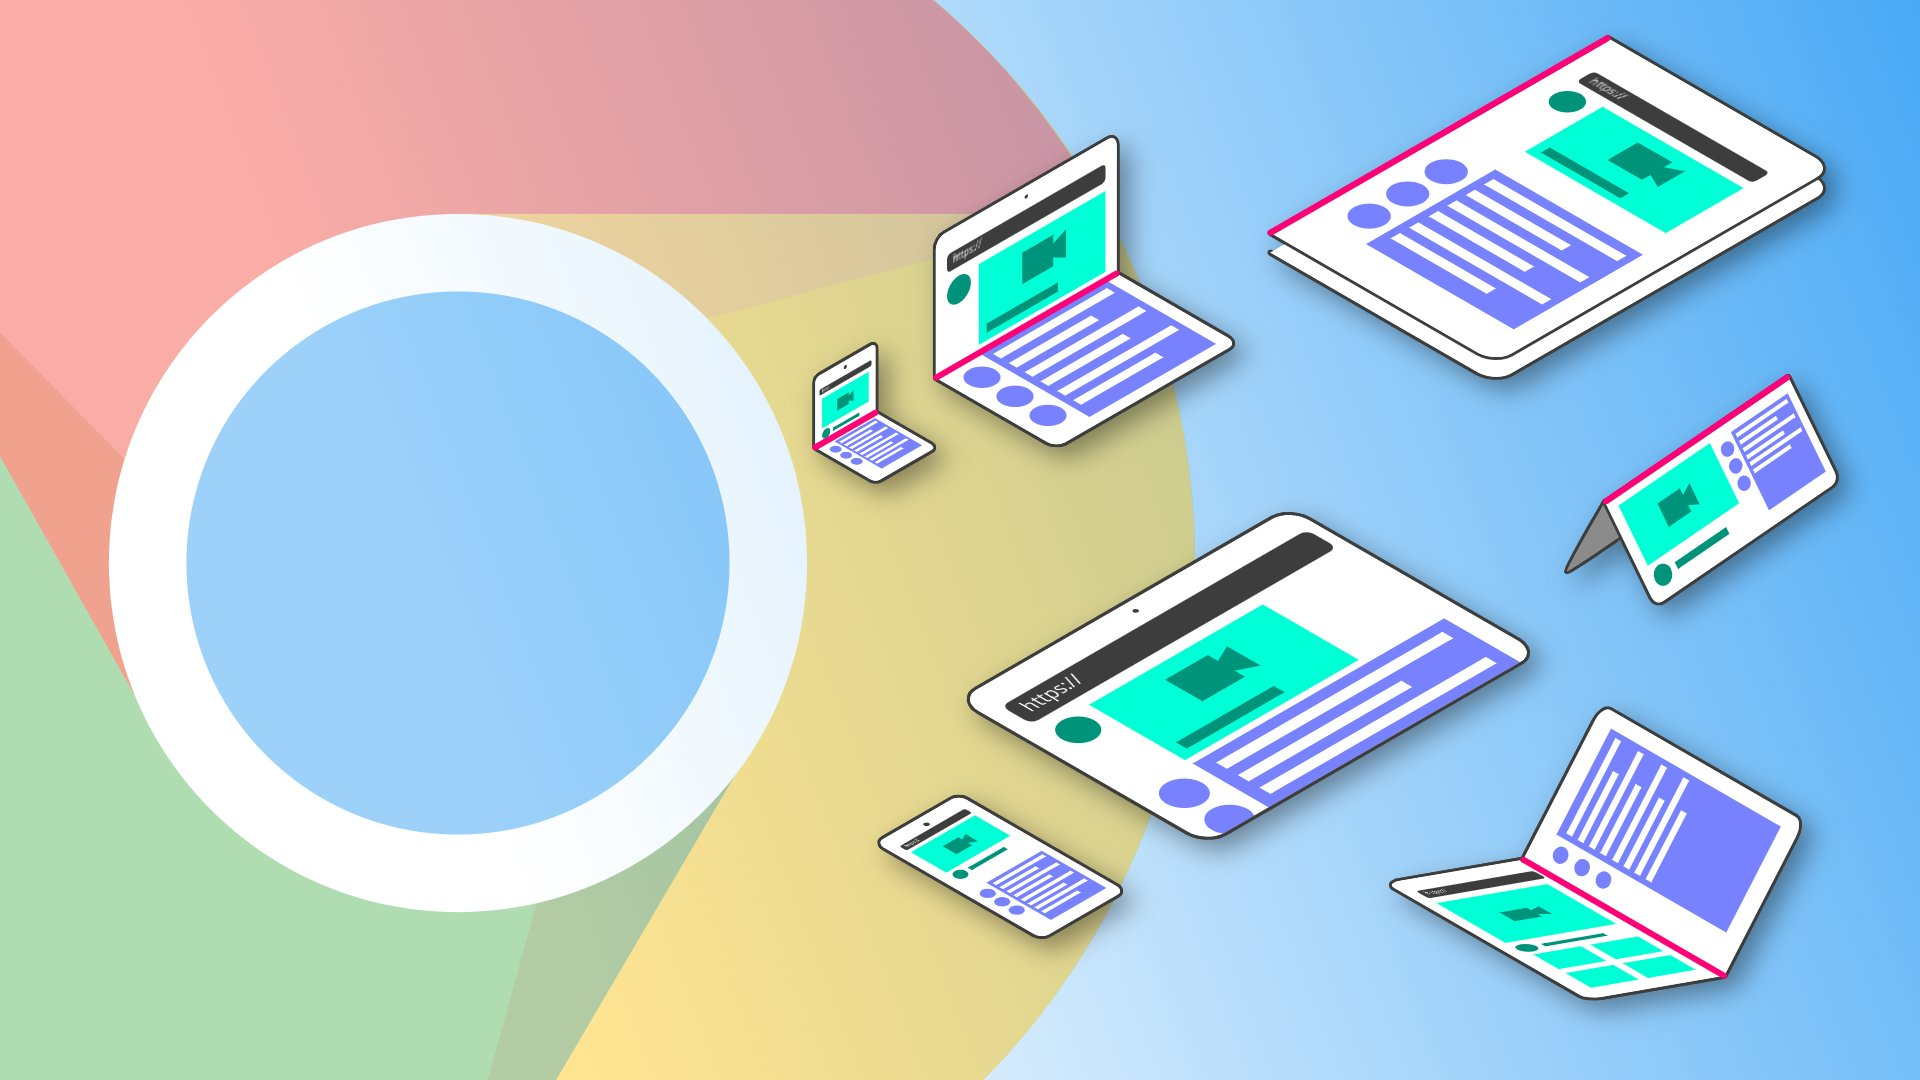 Better web support is coming for folding devices like the Pixel Fold via DevicePosture API